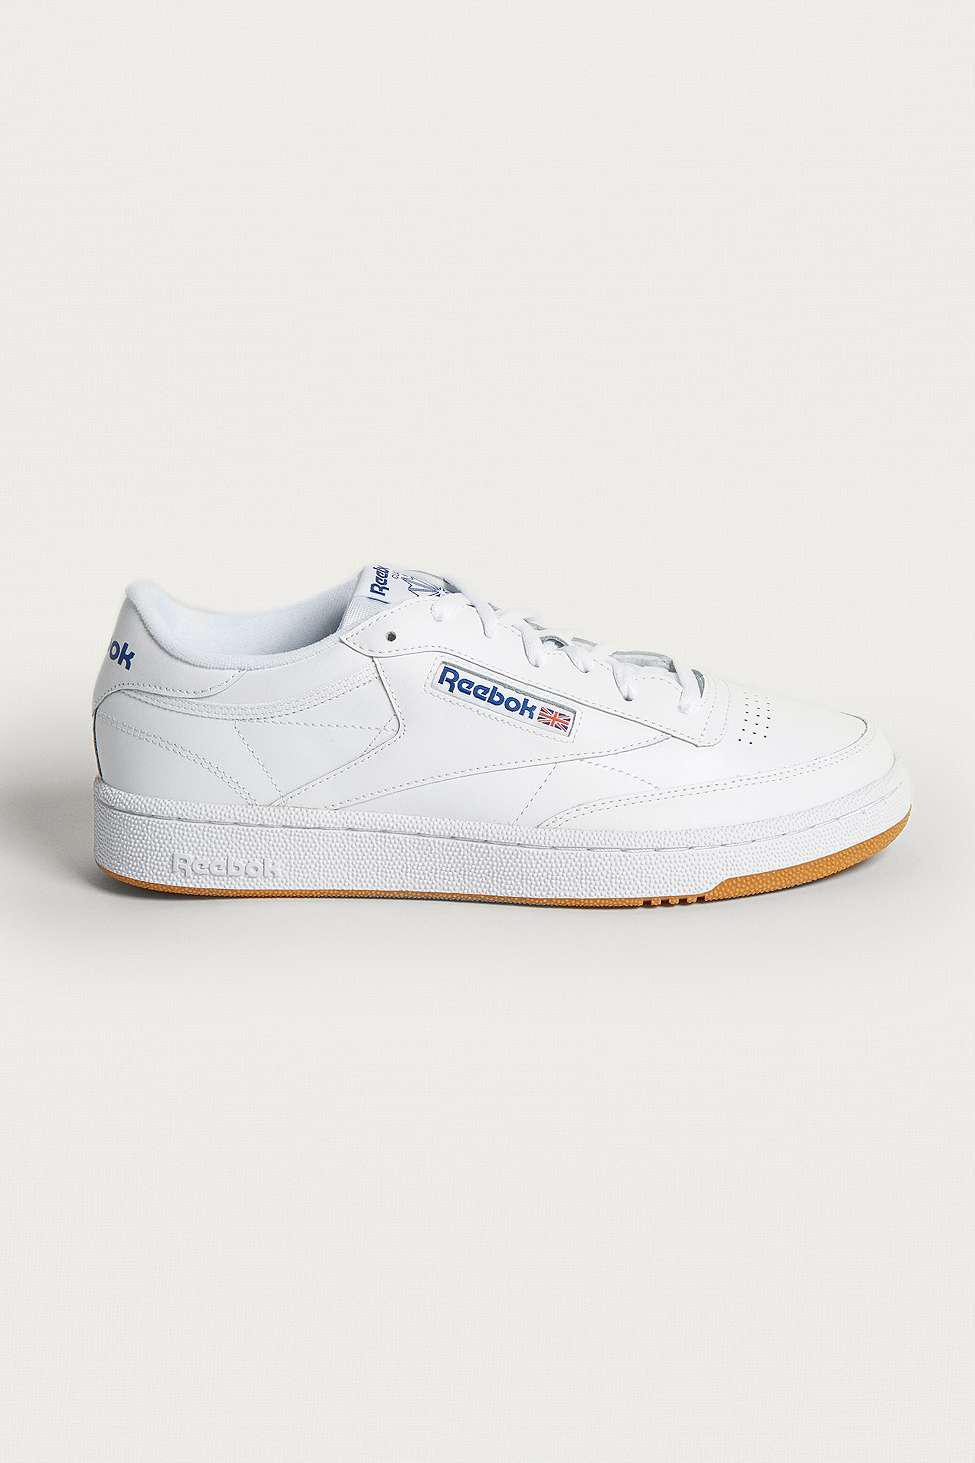 2f318ce35b86 Reebok Club C 85 White Trainers - Mens Uk 8 in White for Men - Lyst